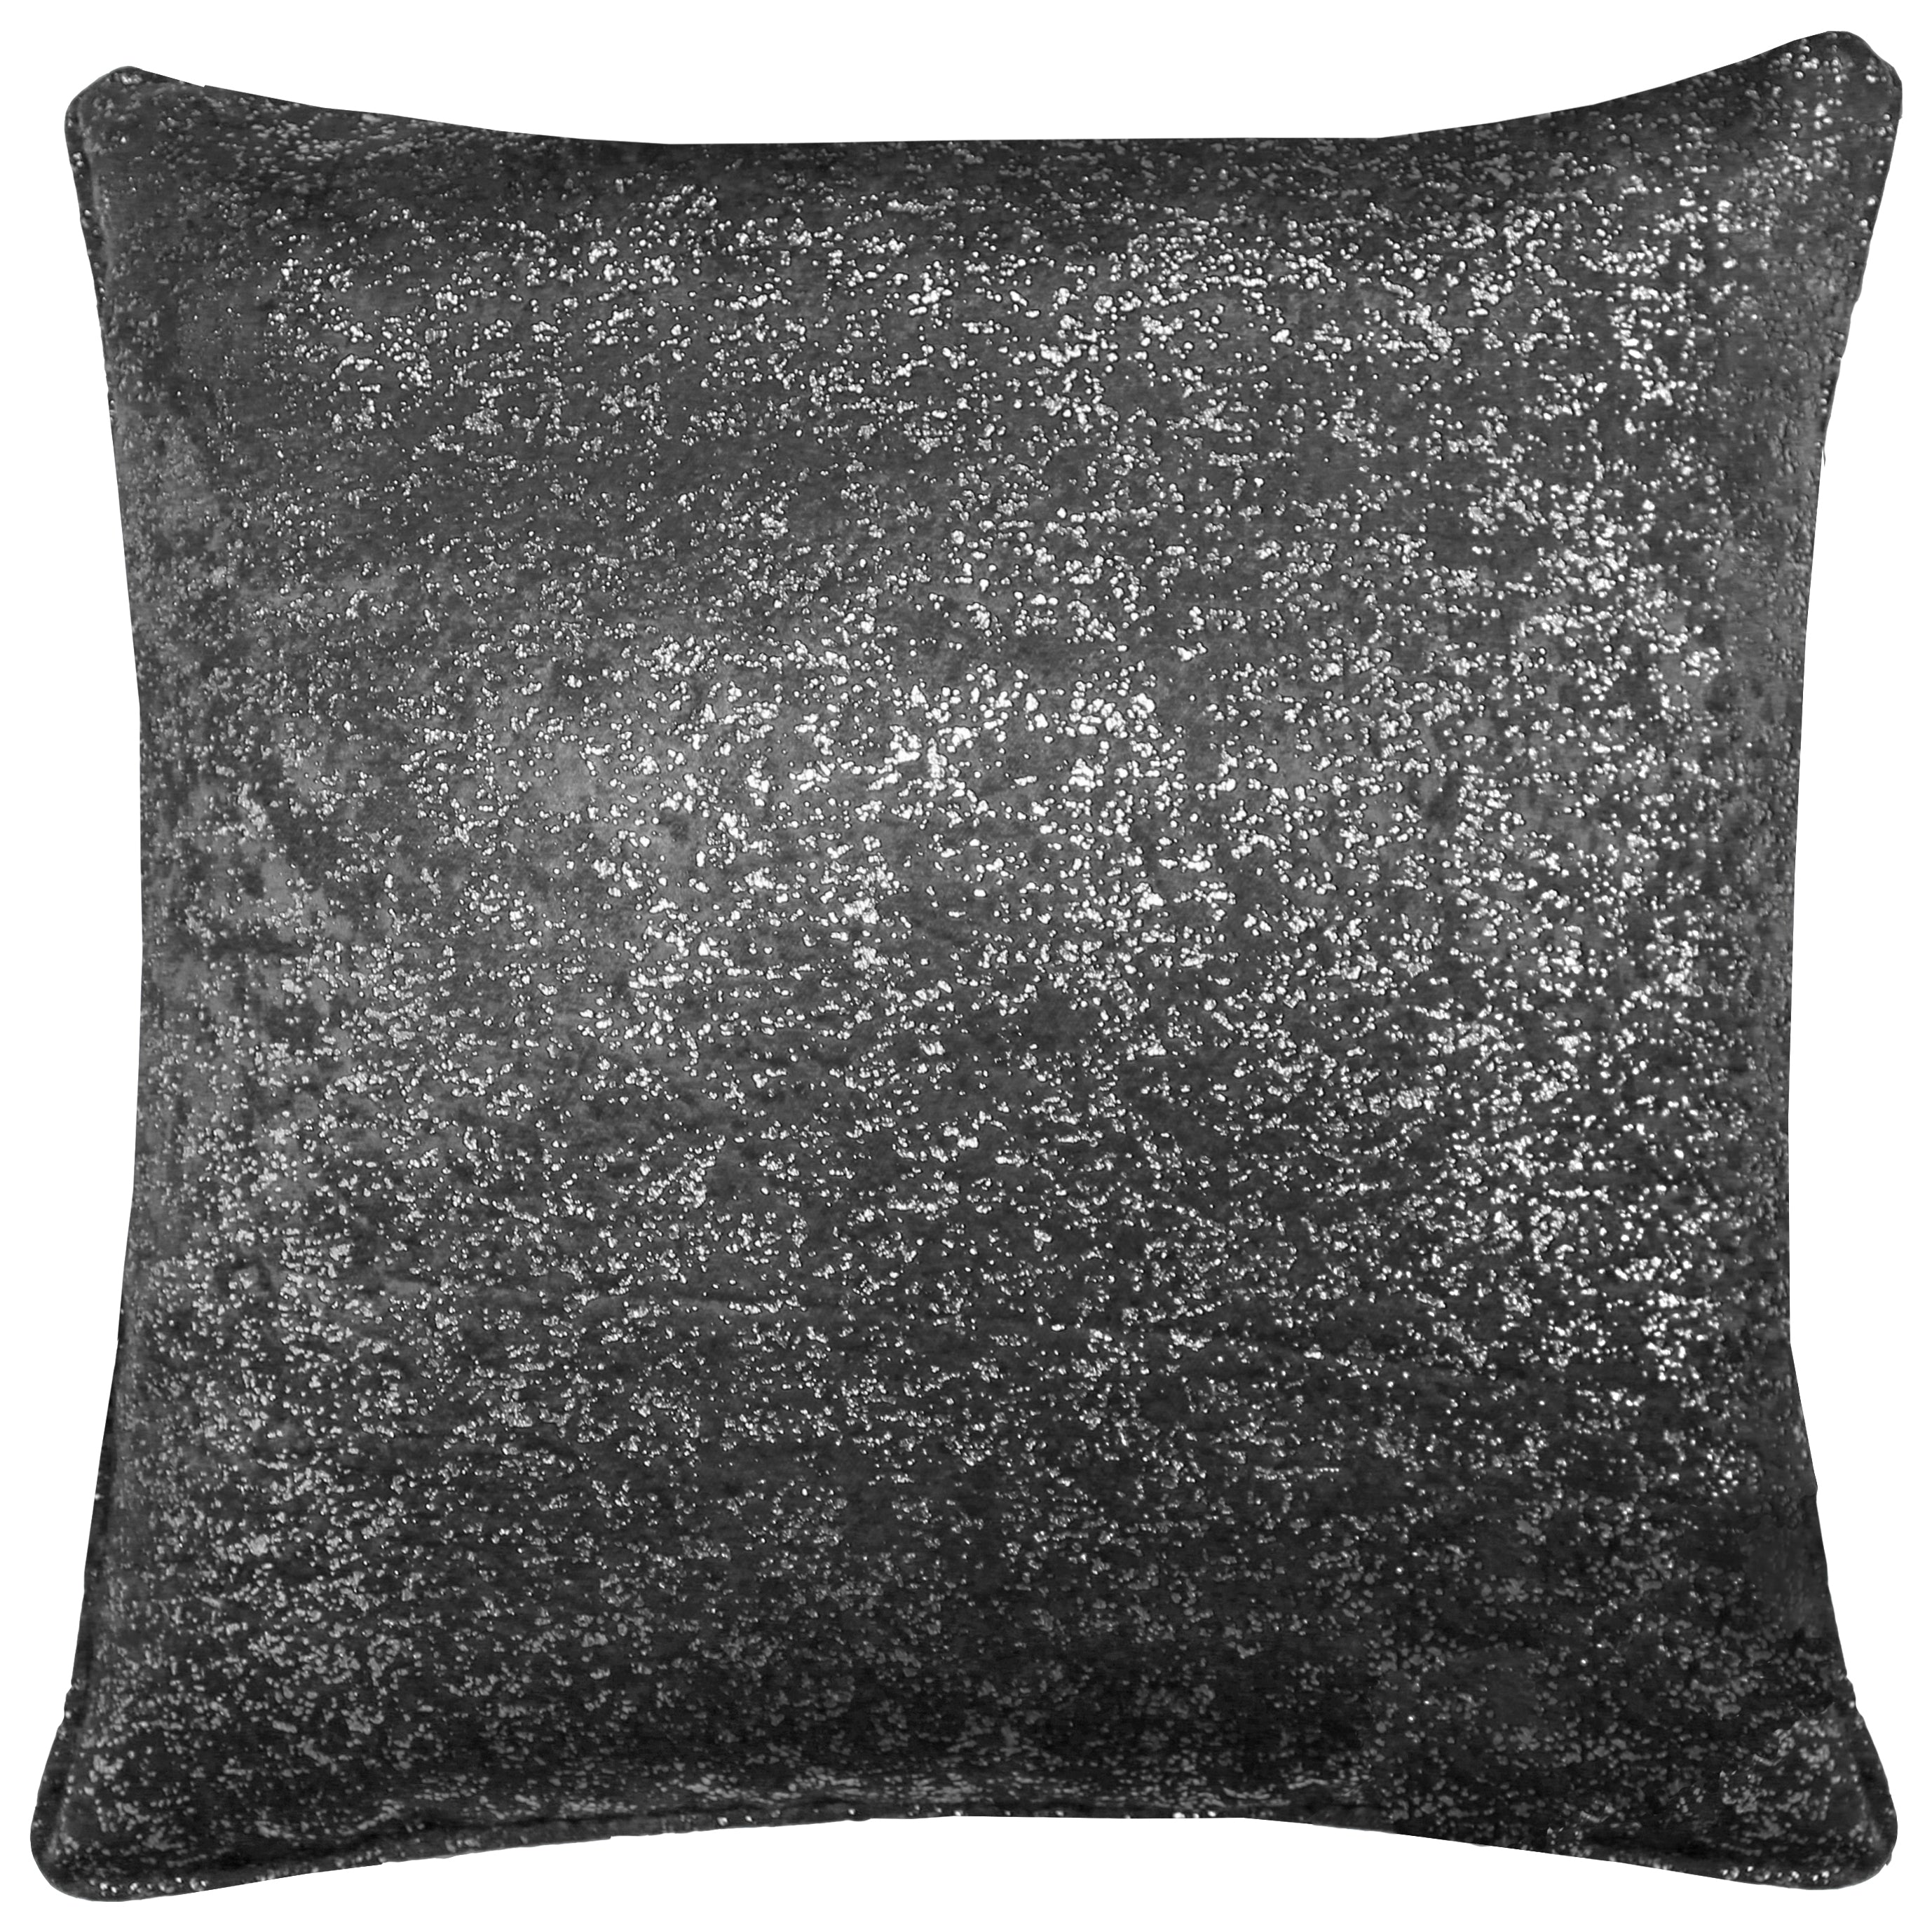 Halo Cushion Cover 17 x 17 Charcoal